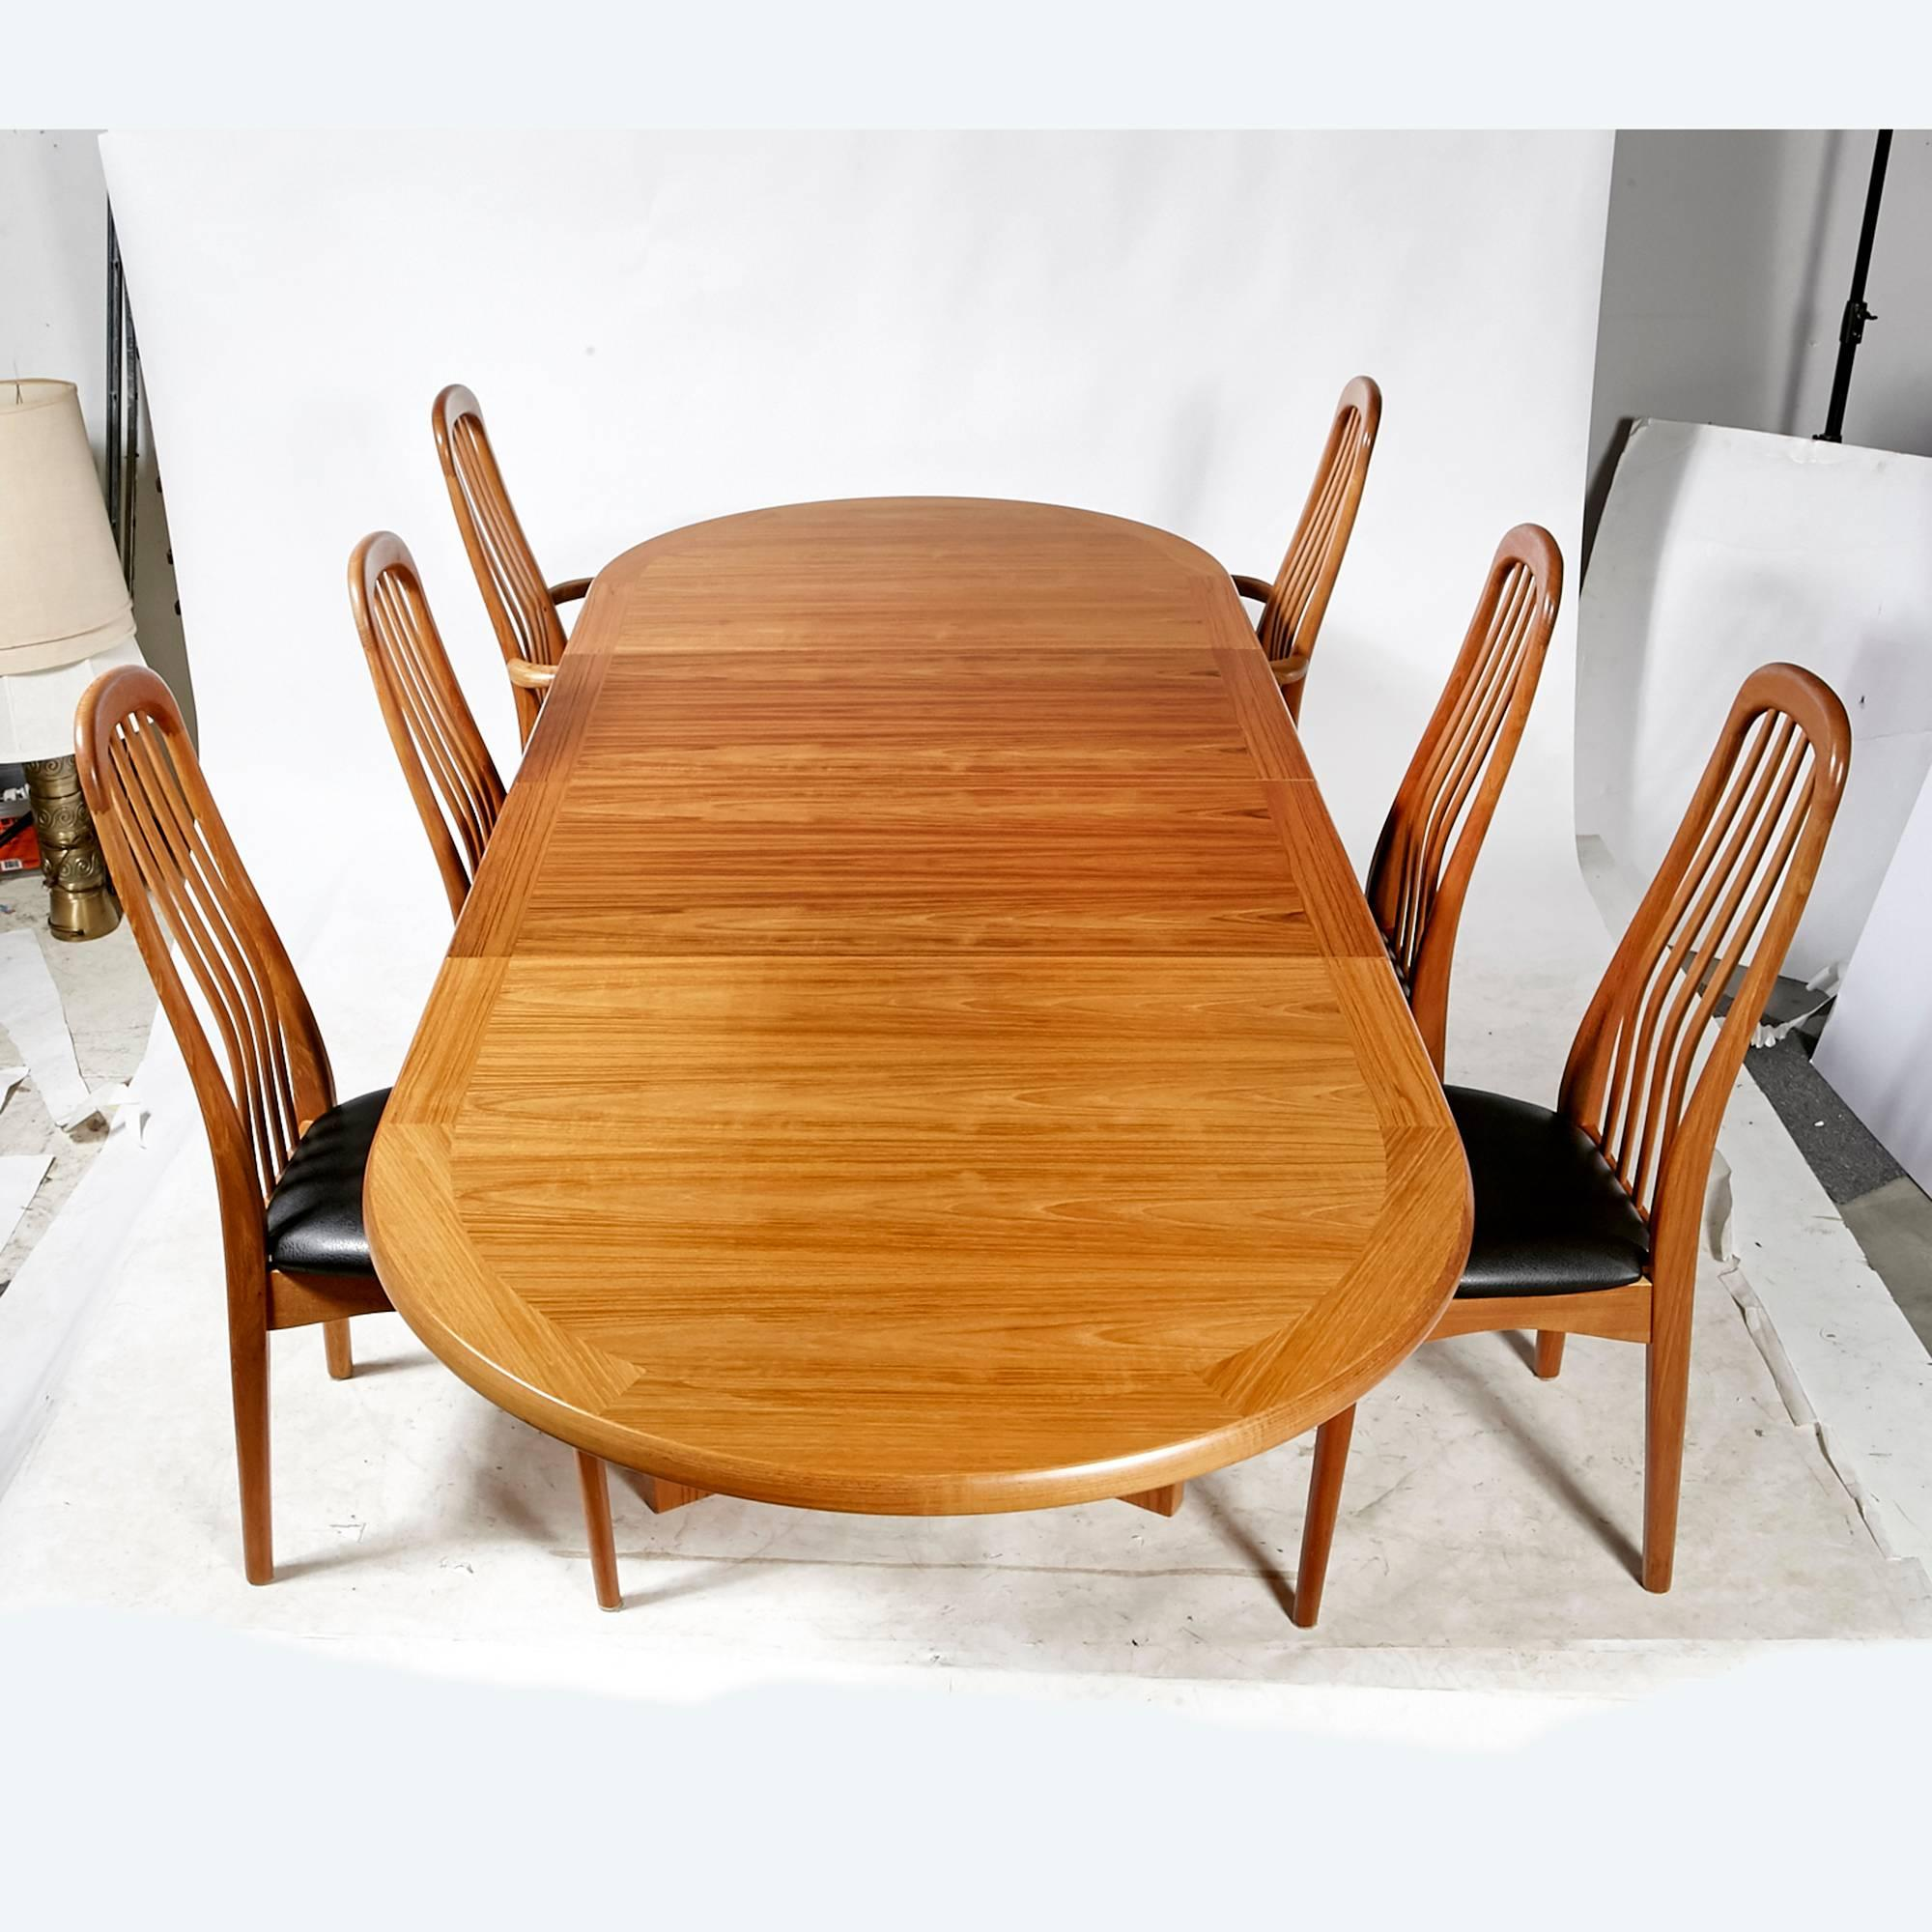 skovby rosewood dining chairs black kitchen table and benny linden scandinavian style teak room set for sale at 1stdibs